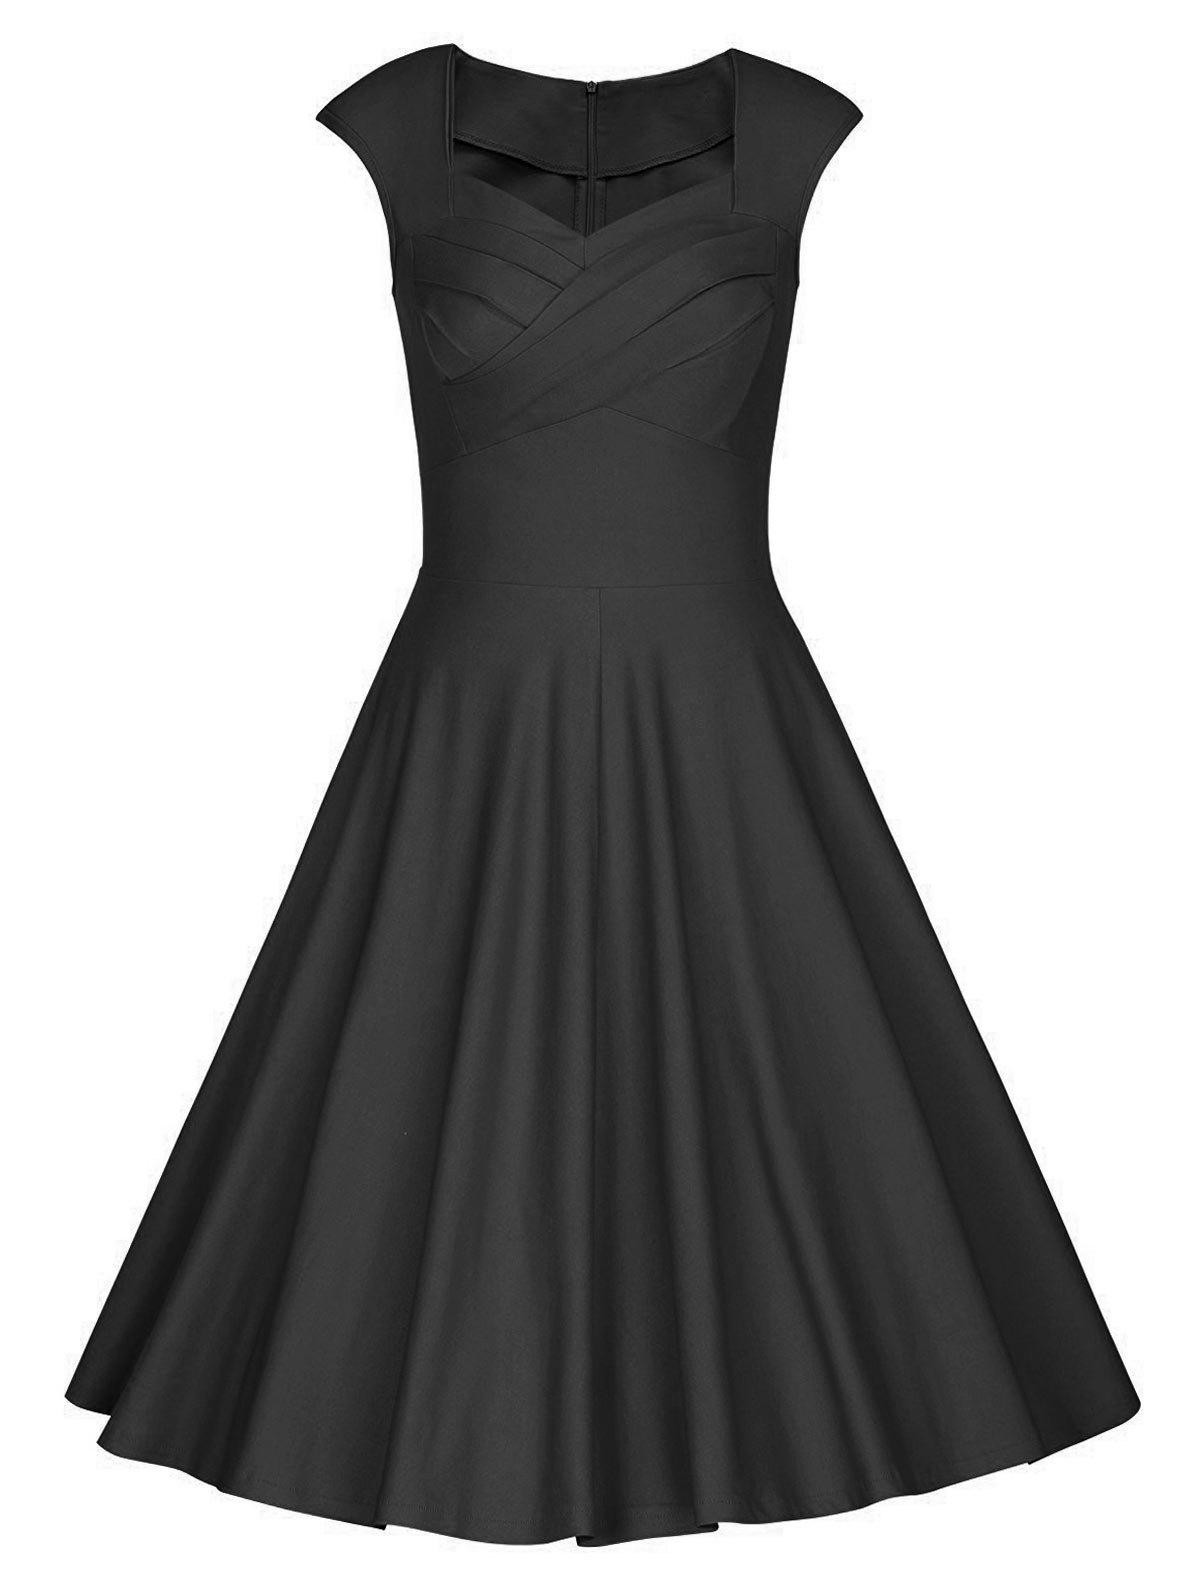 Vintage Sweetheart Neck Pin Up Party Dress - Noir L